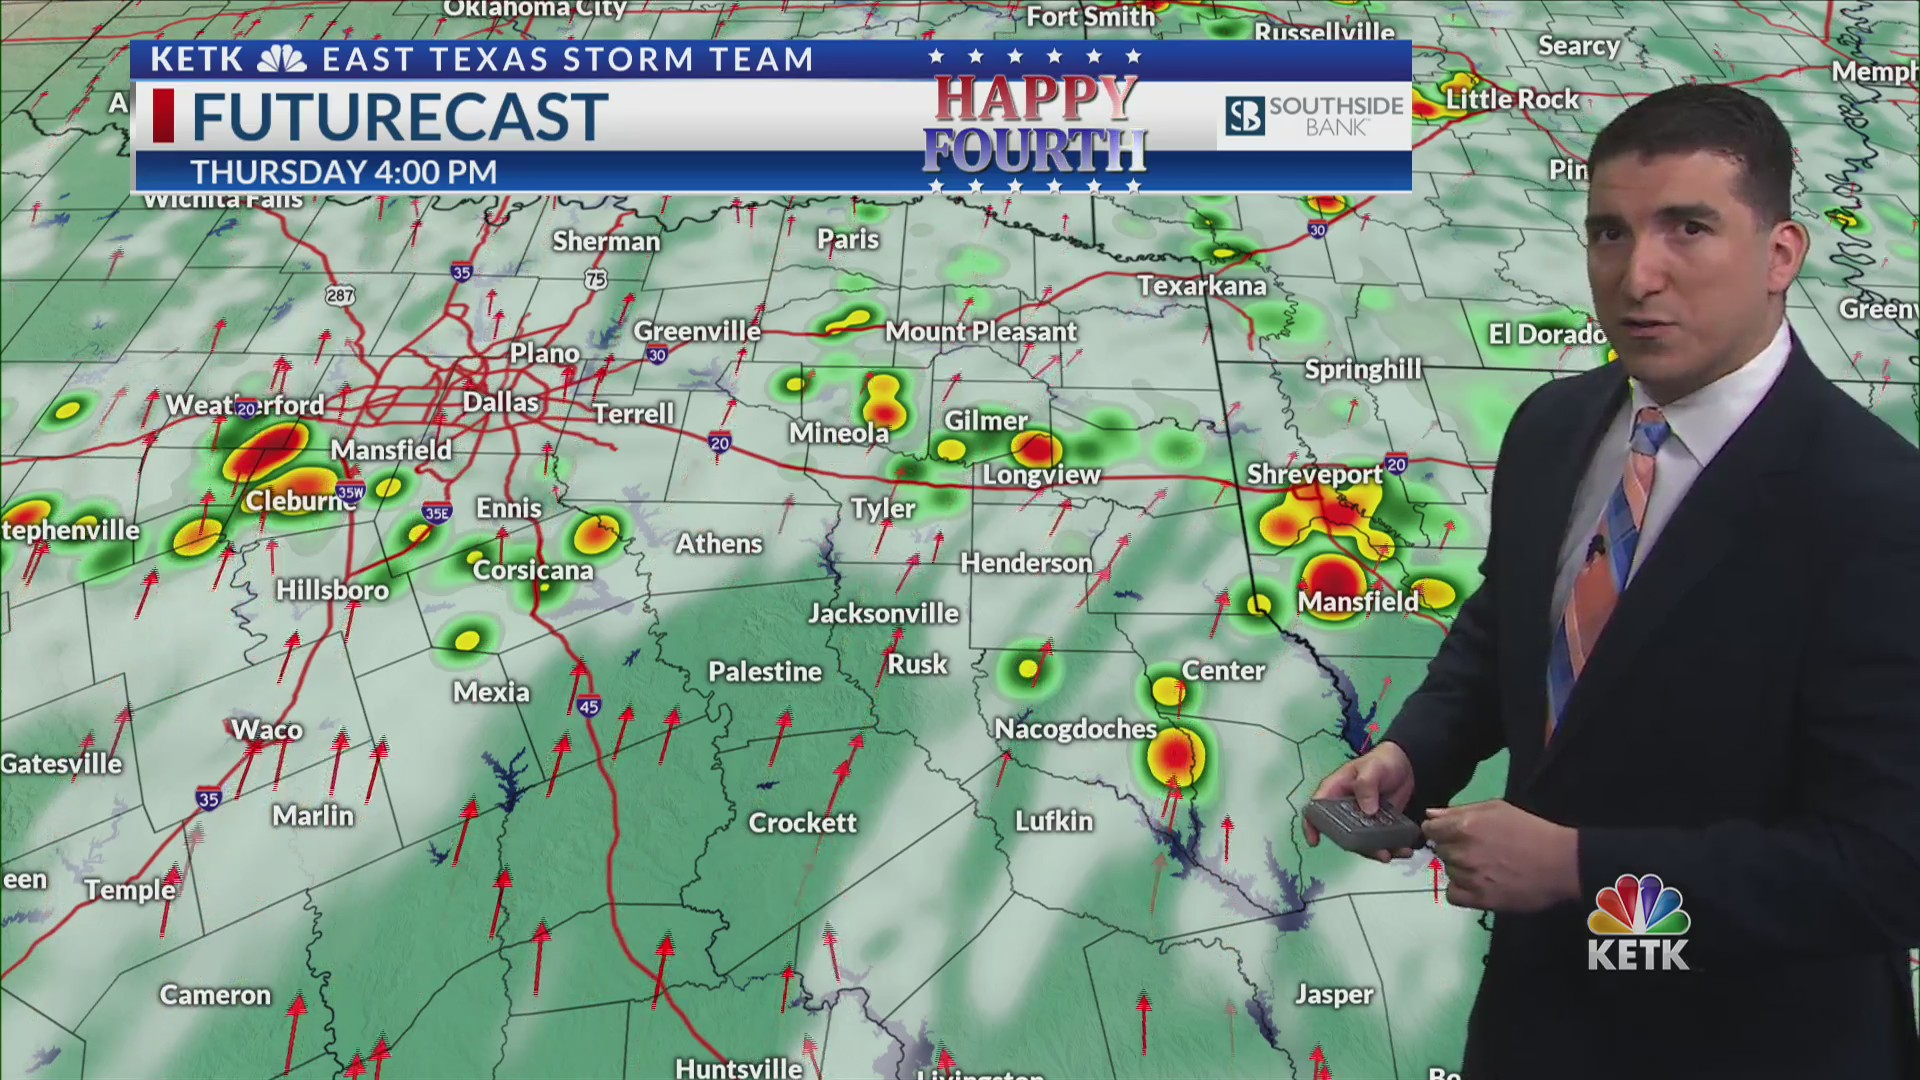 WEDNESDAY PM FORECAST: Variable clouds and humid